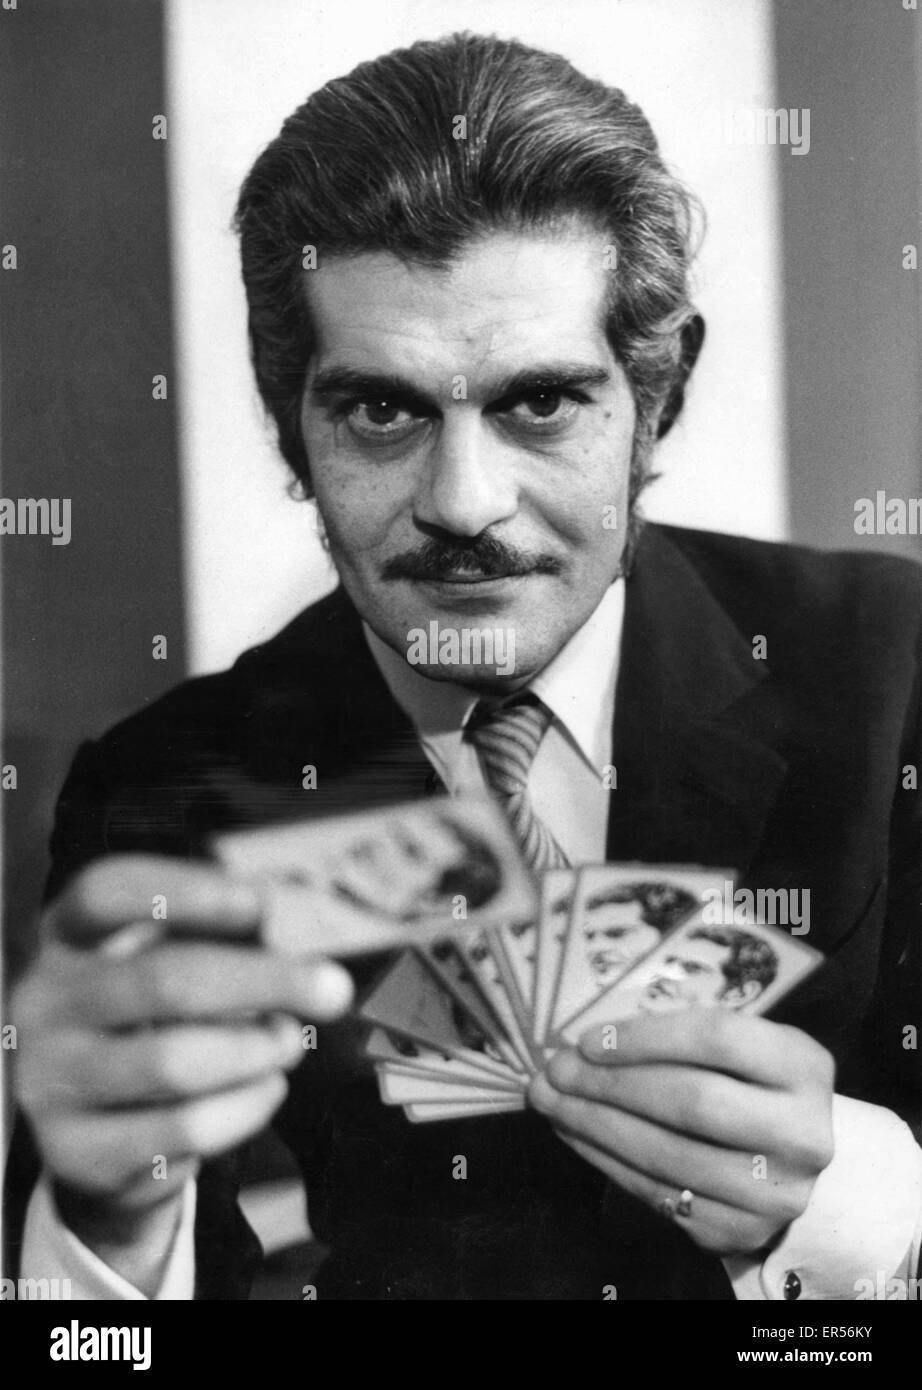 May 27, 2015 - Actor OMAR SHARIF, who starred in Lawrence of Arabia and Doctor Zhivago in the 1960s, has been diagnosed - Stock Image